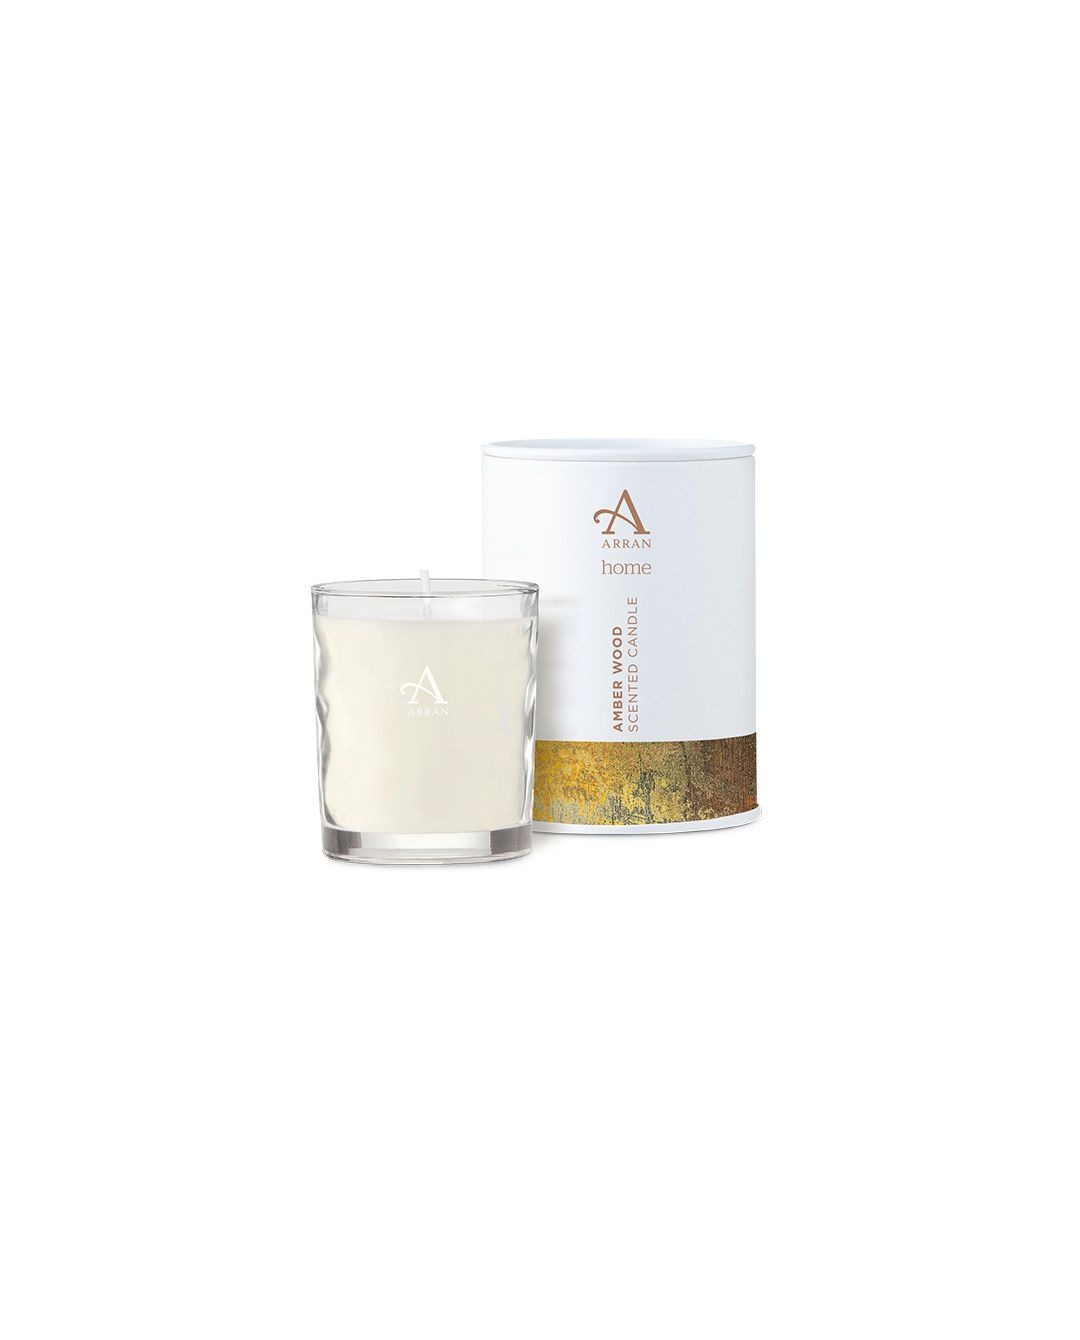 Image of Arran Aromatics Amberwood 8cl Candle in Tin